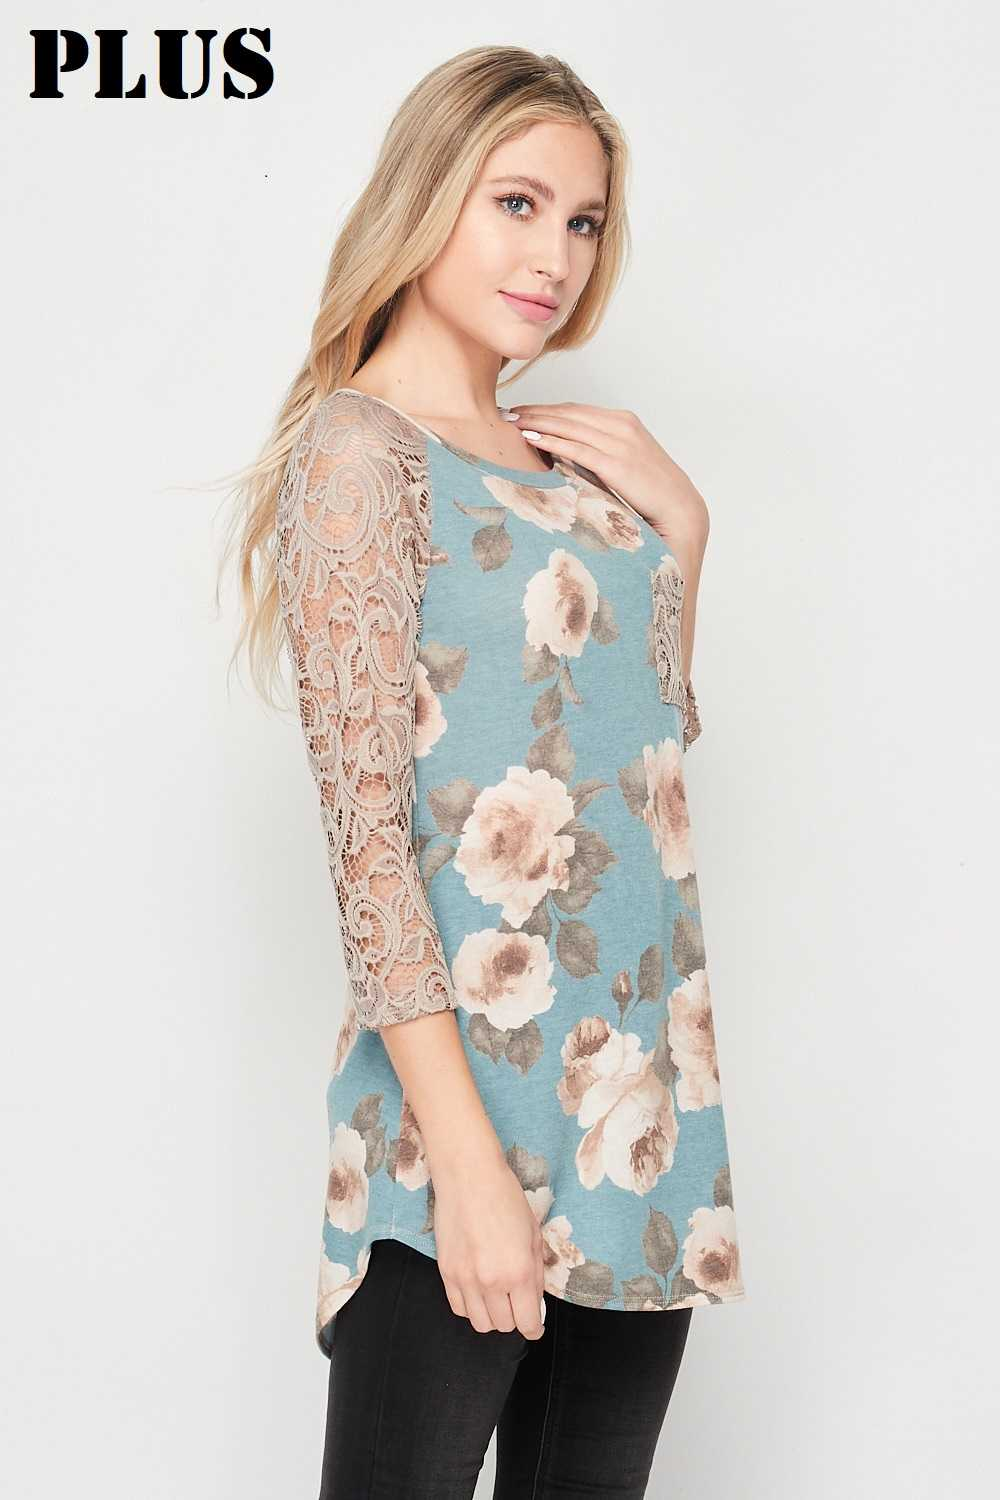 PLUS Sea Blue Lace Contrast 3/4 Sleeves Top